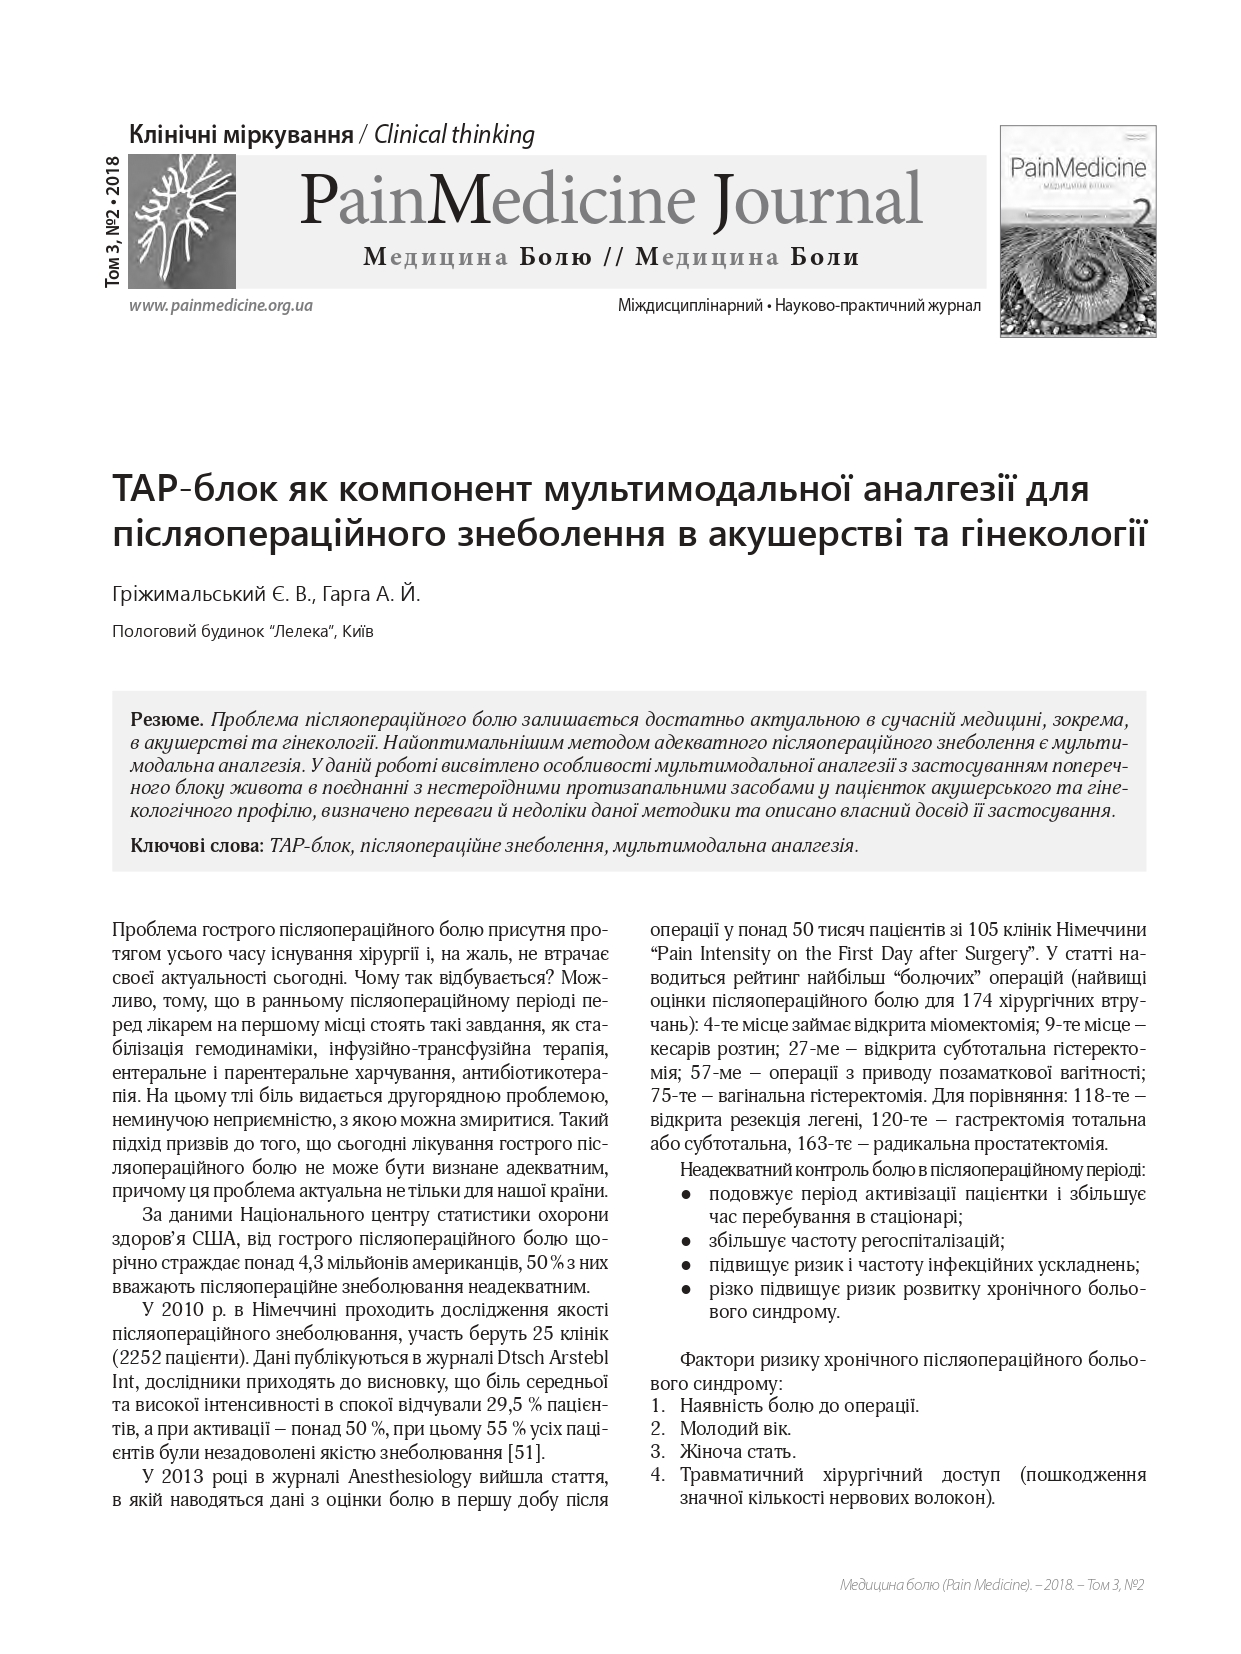 TAP-block as a component of multimodal analgesia for postoperative anesthesia in obstetrics and gynecology